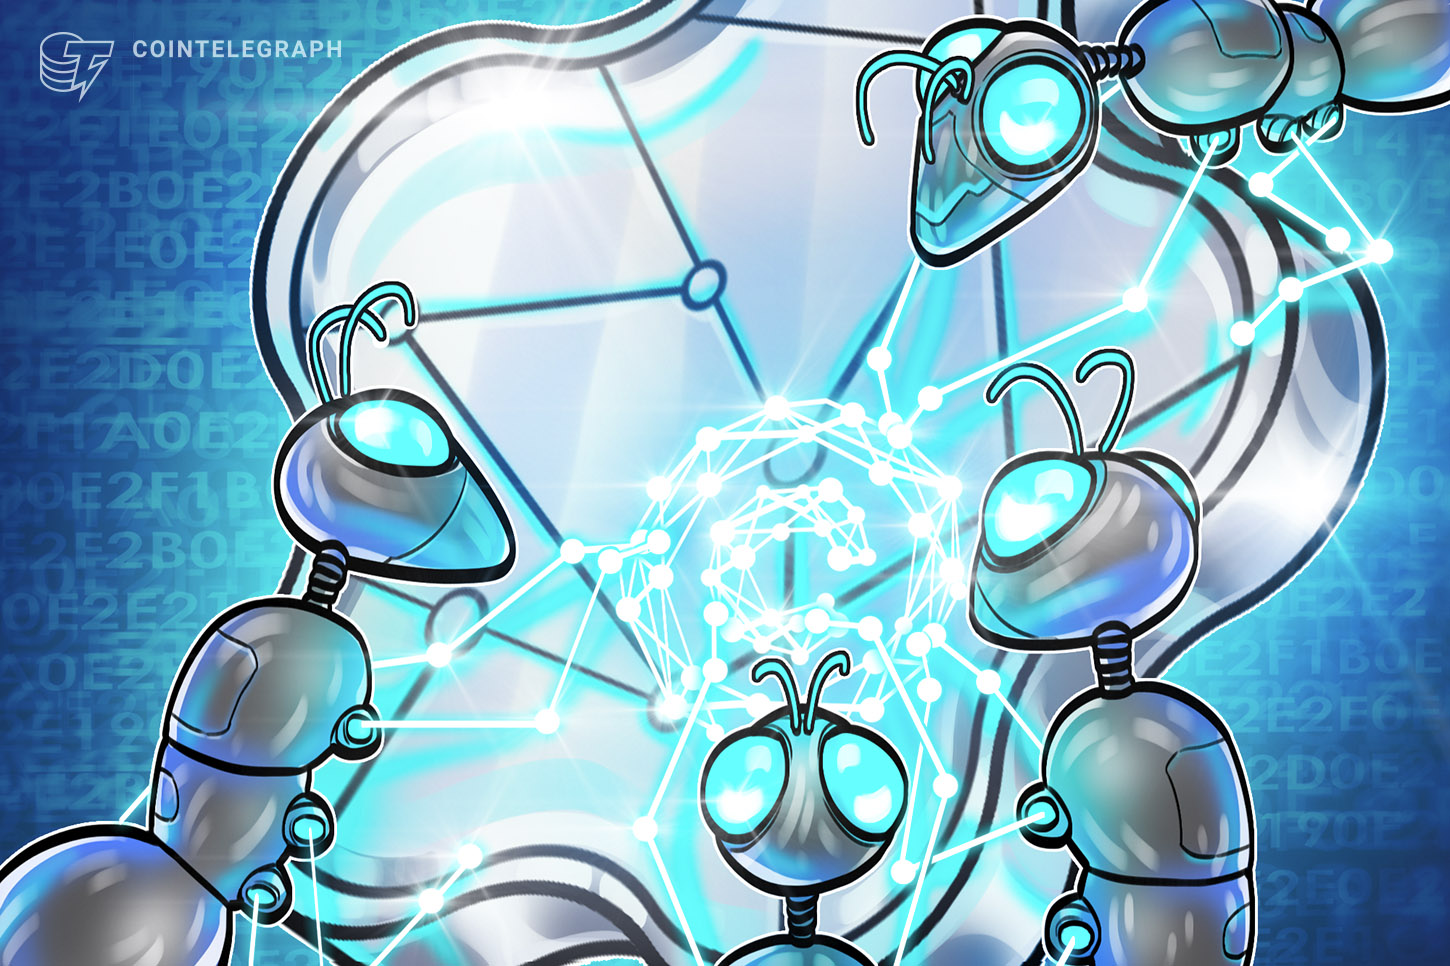 Cointelegraph Exclusive: artist Damien Hirst says NFTs are like 'the invention of paper'